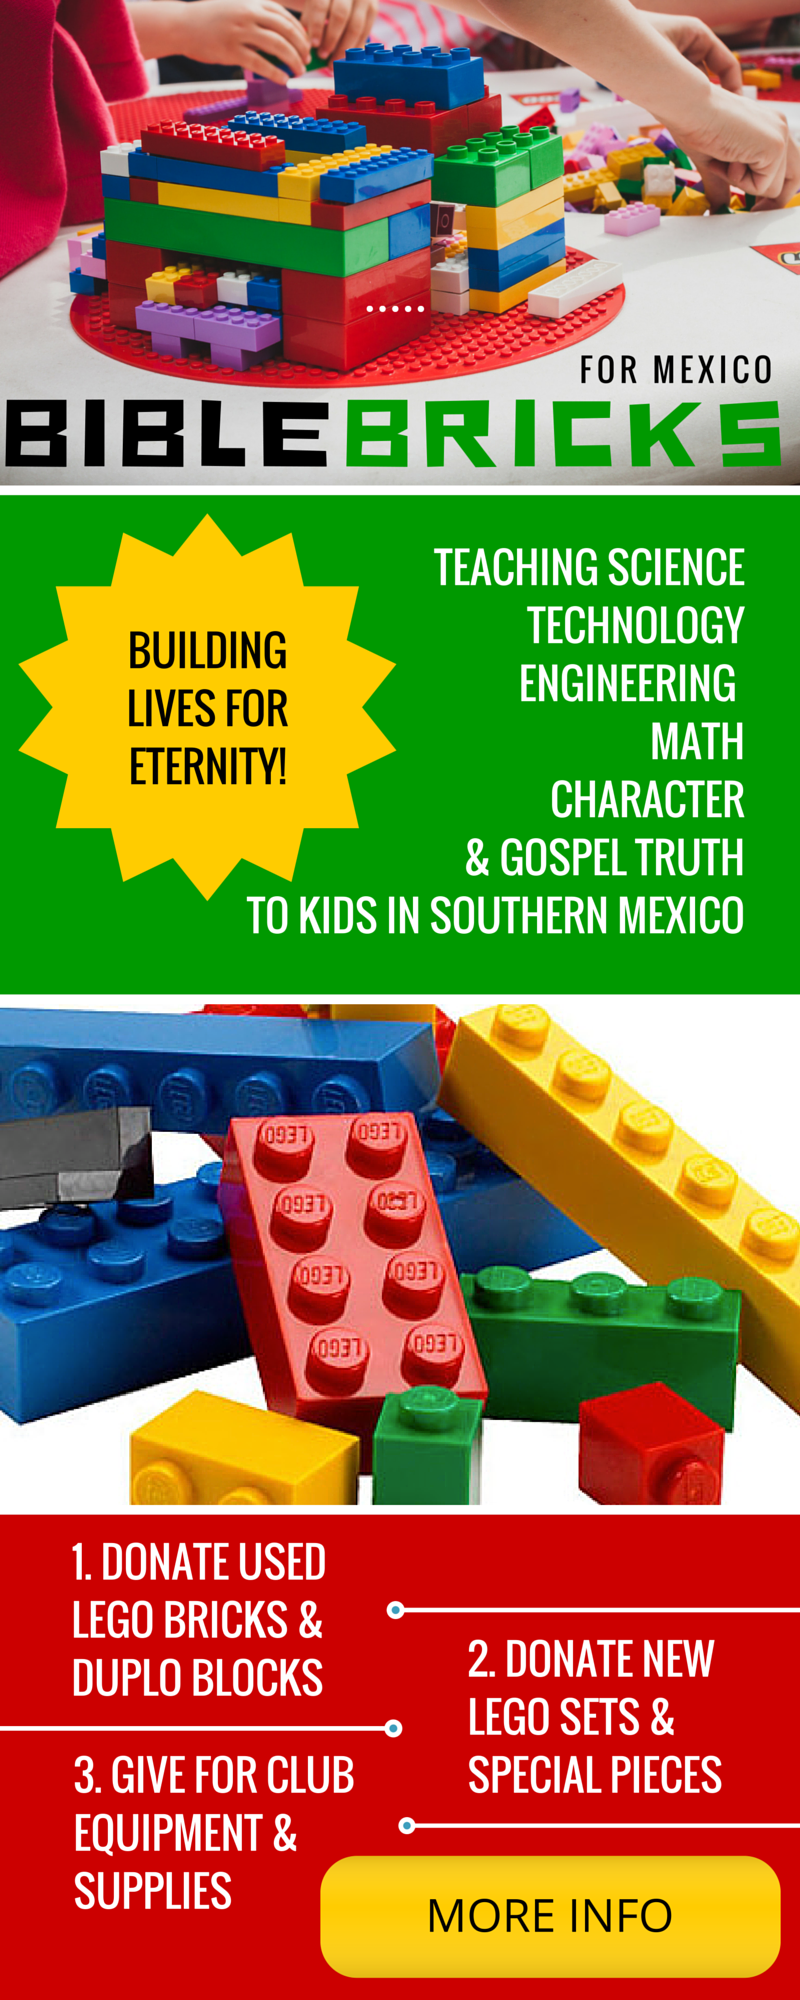 Bible Bricks For Mexico: Lego Group Education and Bible training